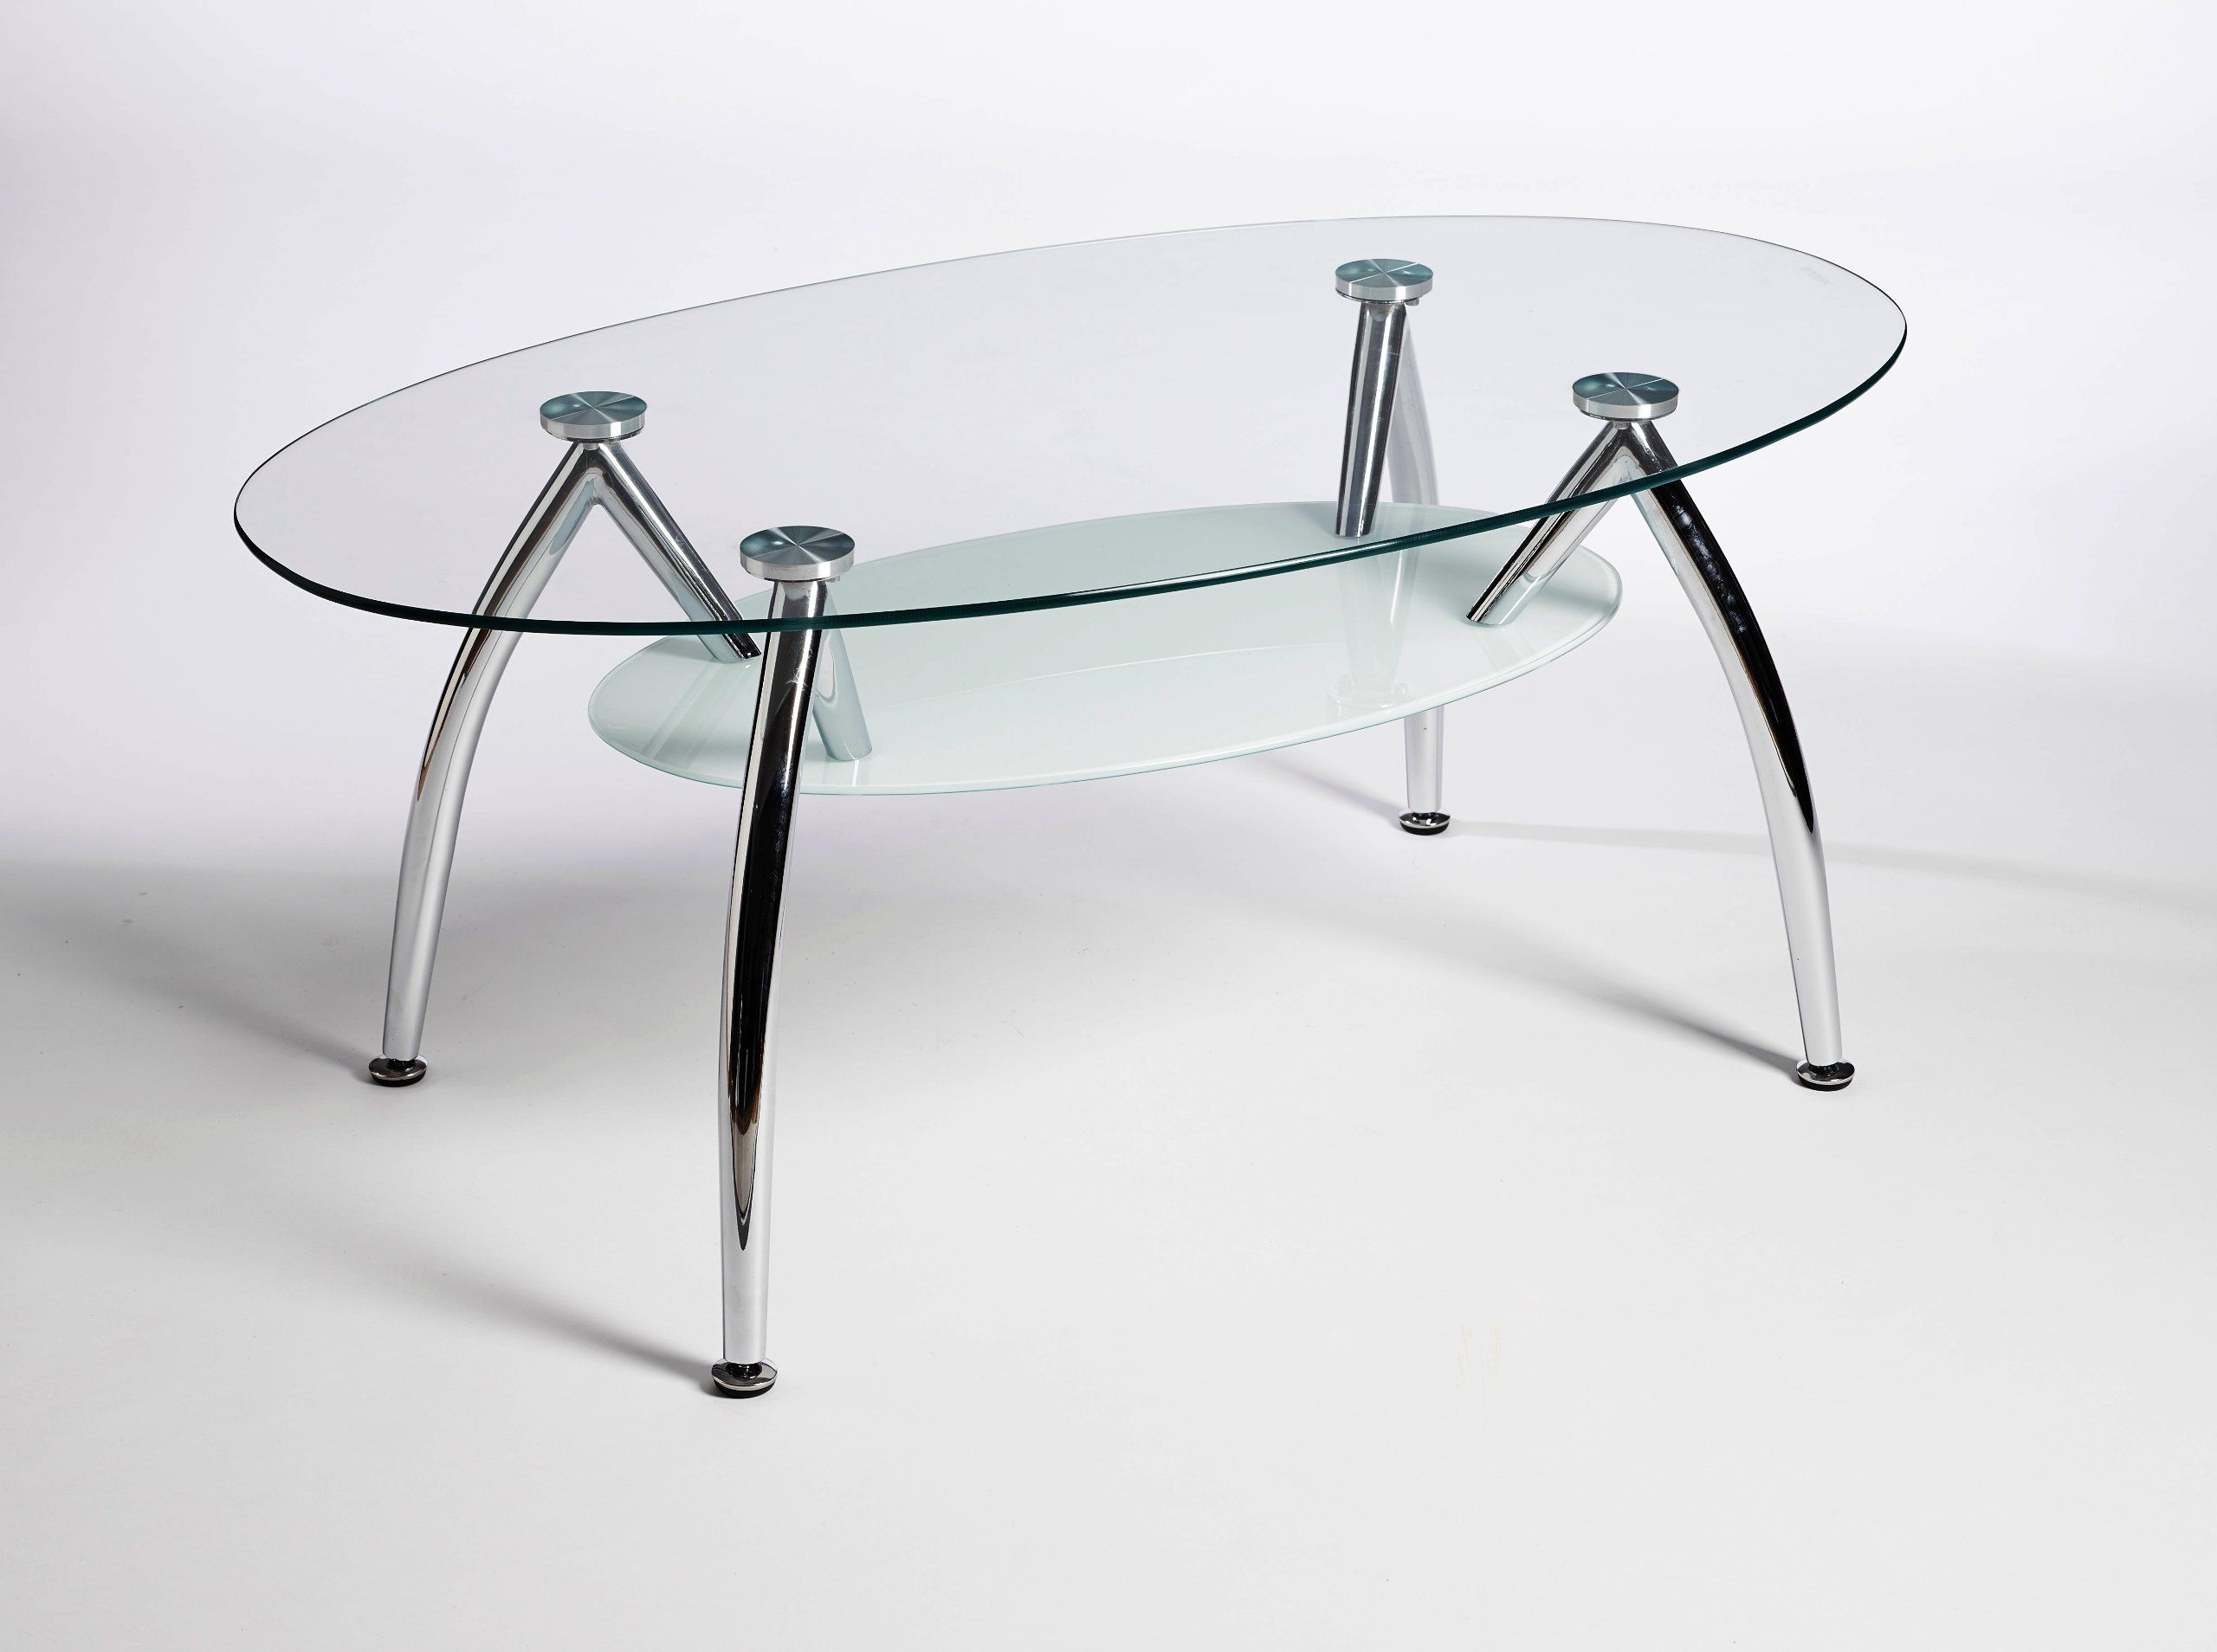 Designer Oval Glass Stainless Steel Coffee Table Amazon Co Uk Kitchen Home Stainless Steel Coffee Table Steel Coffee Table Contemporary Coffee Table [ 1908 x 2560 Pixel ]